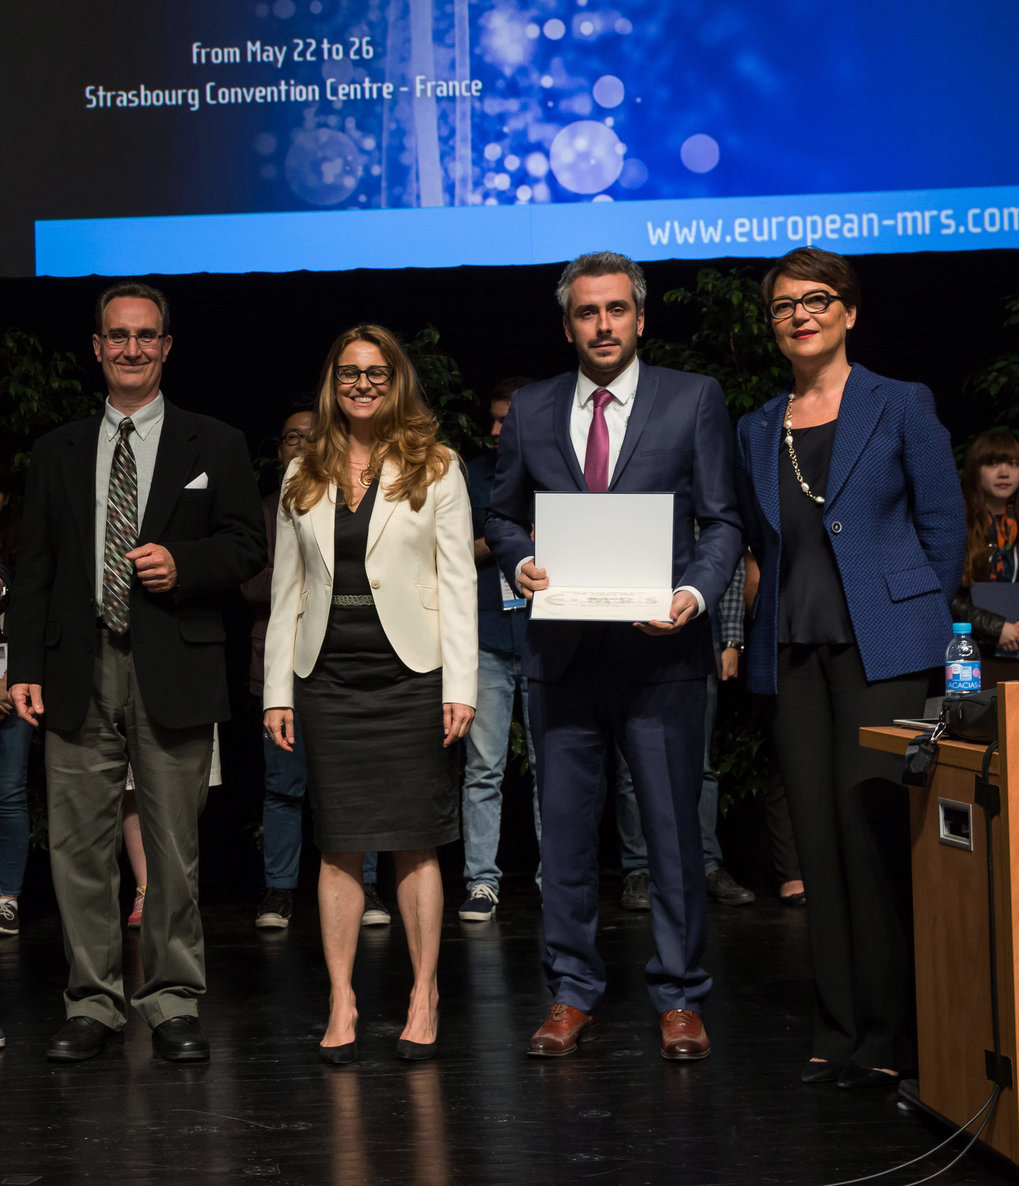 "We are proud to announce that Mr. Y. Eren Suyolcu, PhD student in the Stuttgart Center for Electron Microscopy has been awarded the ""Young Scientist Award"" at the E-MRS 2017 Spring Meeting in Strasbourg, France. The prize was awarded for the research project ""Dopant Size Effects on Interfacial Superconductivity in Lanthanum Cuprate Bilayers"" with co-authors Y. Wang, F. Baiutti, G. Gregori, G. Cristiani, W. Sigle, J. Maier, P.A. van Aken and G. Logvenov."